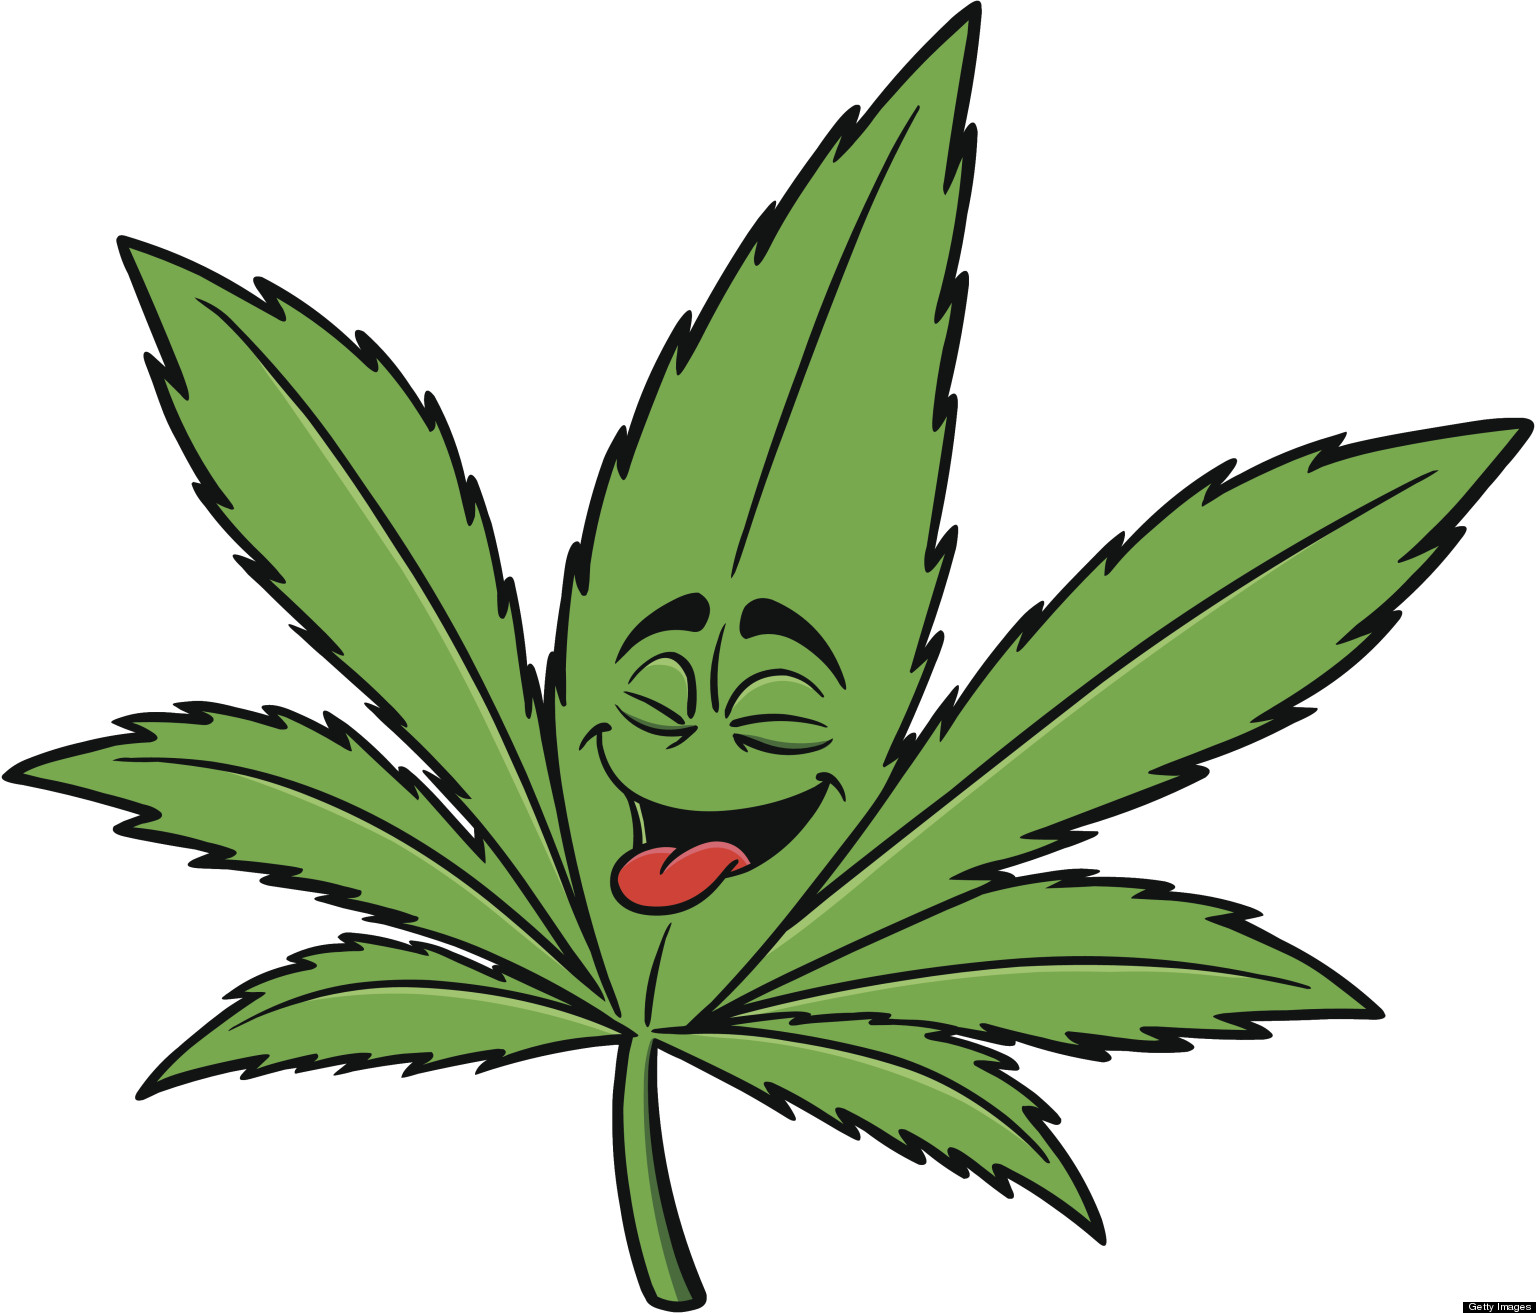 Weed clipart #4, Download drawings